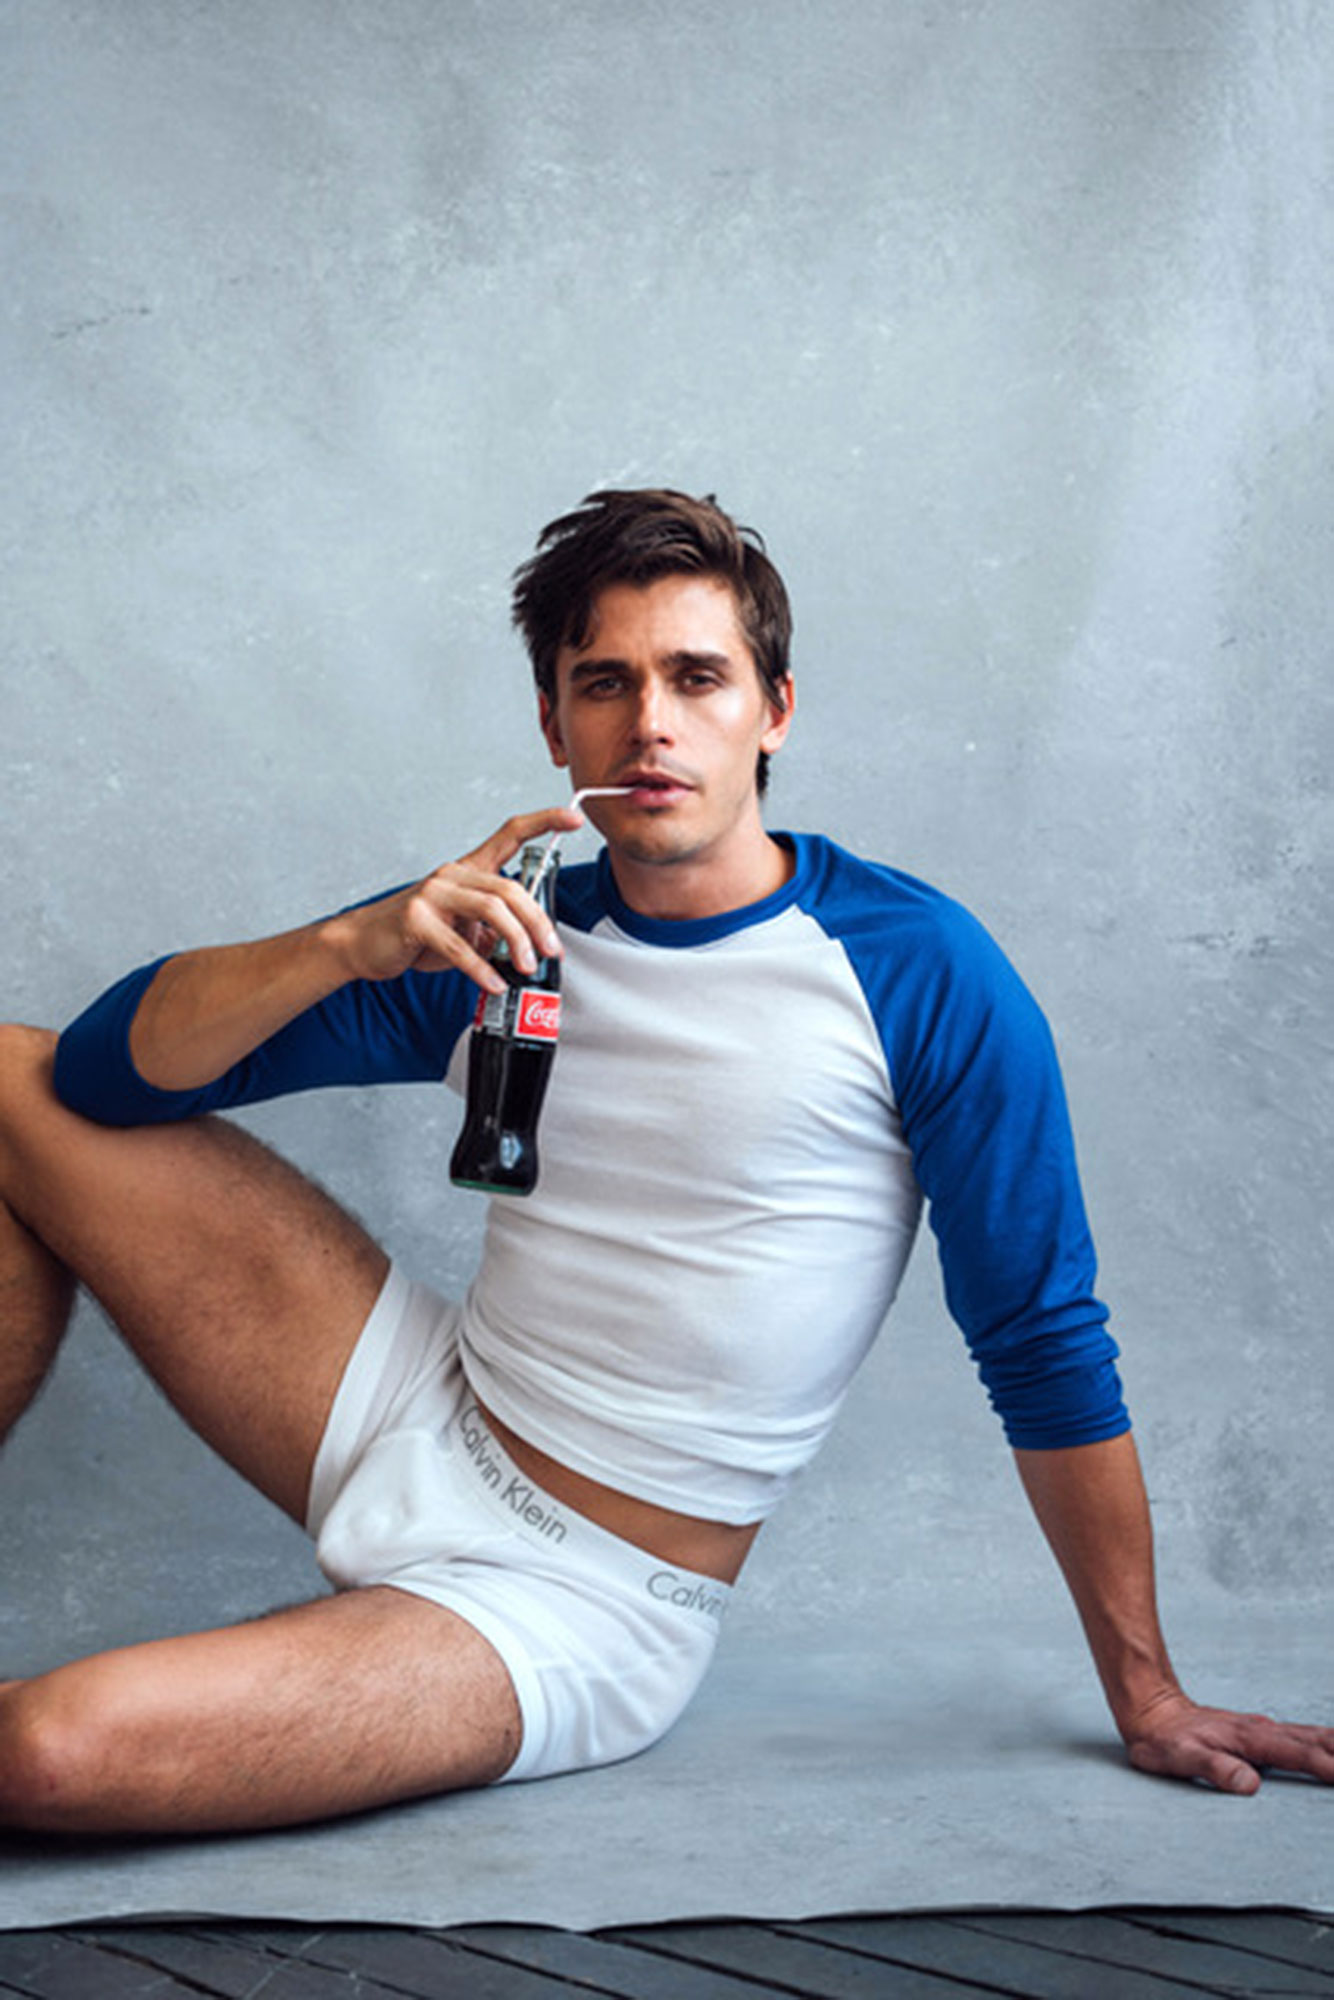 Antoni PorowksiCredit: Gay Times